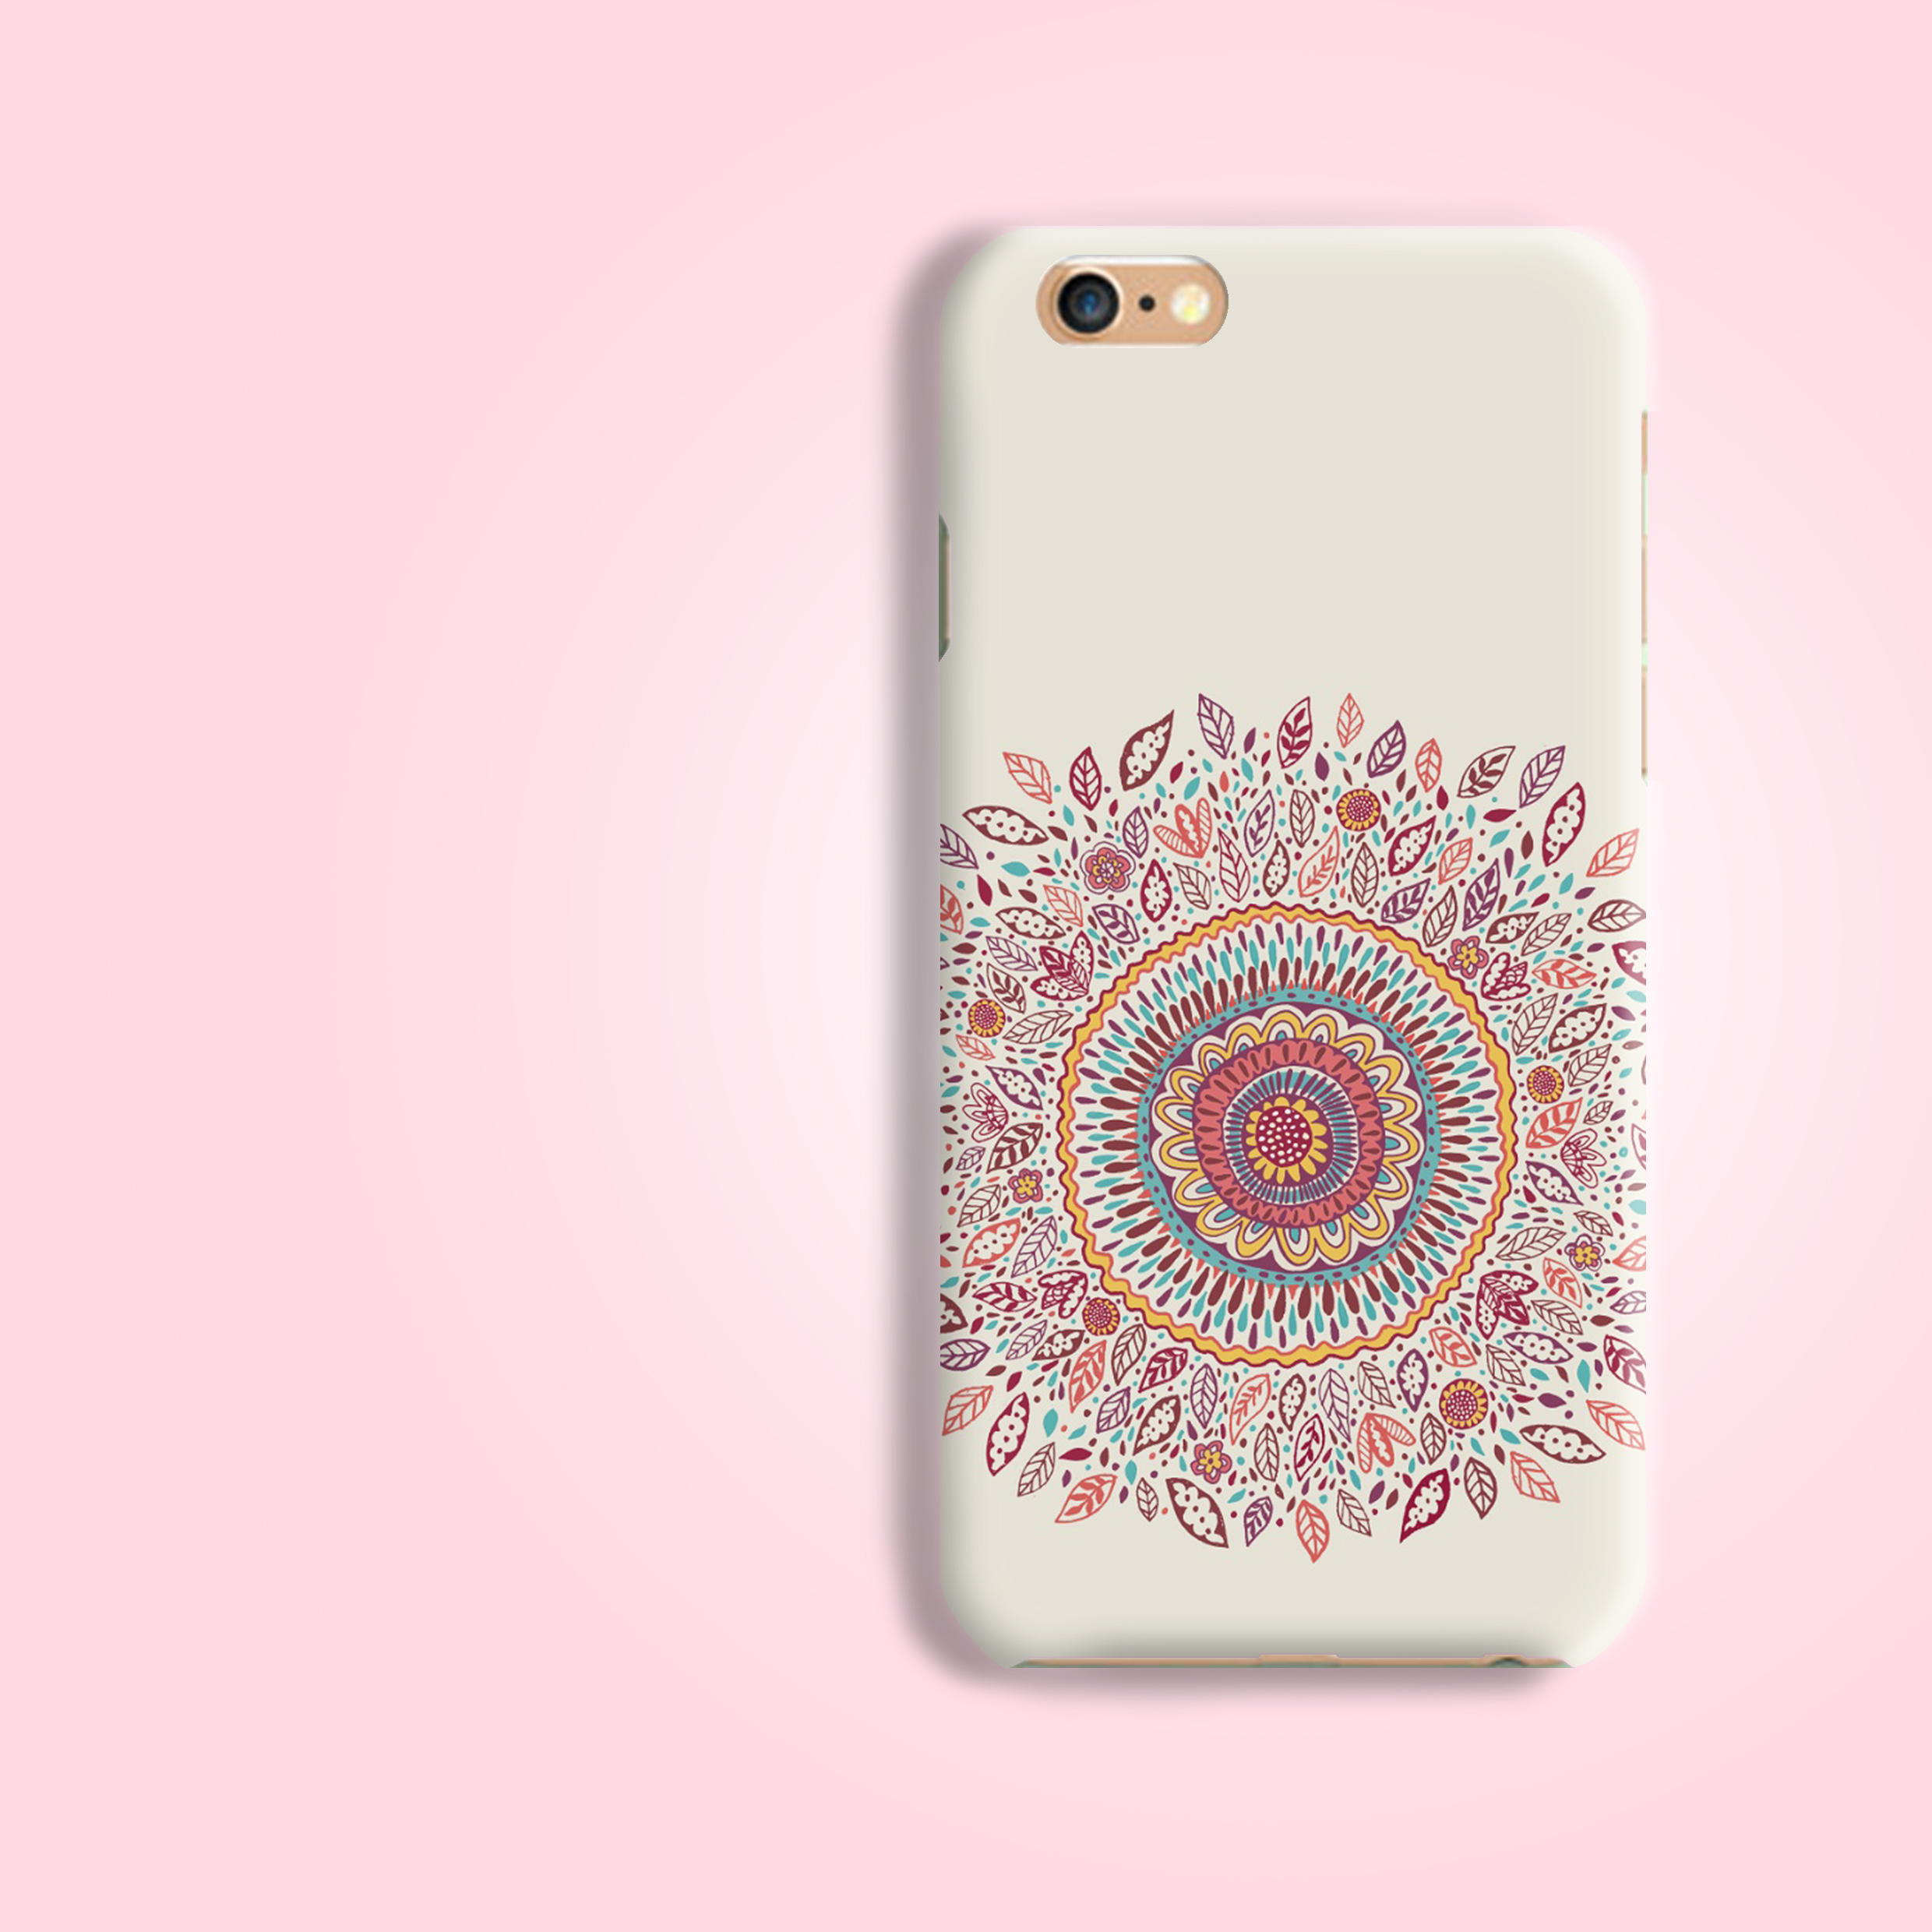 7f7c20042e5 Mandala henna pattern rigid hard phone case for iPhone X 8 7 6S SE Plus  Galaxy S9 S8 Plus S7 edge Note 8 Note 5 A8 2018 A7 2017 A5 on Storenvy